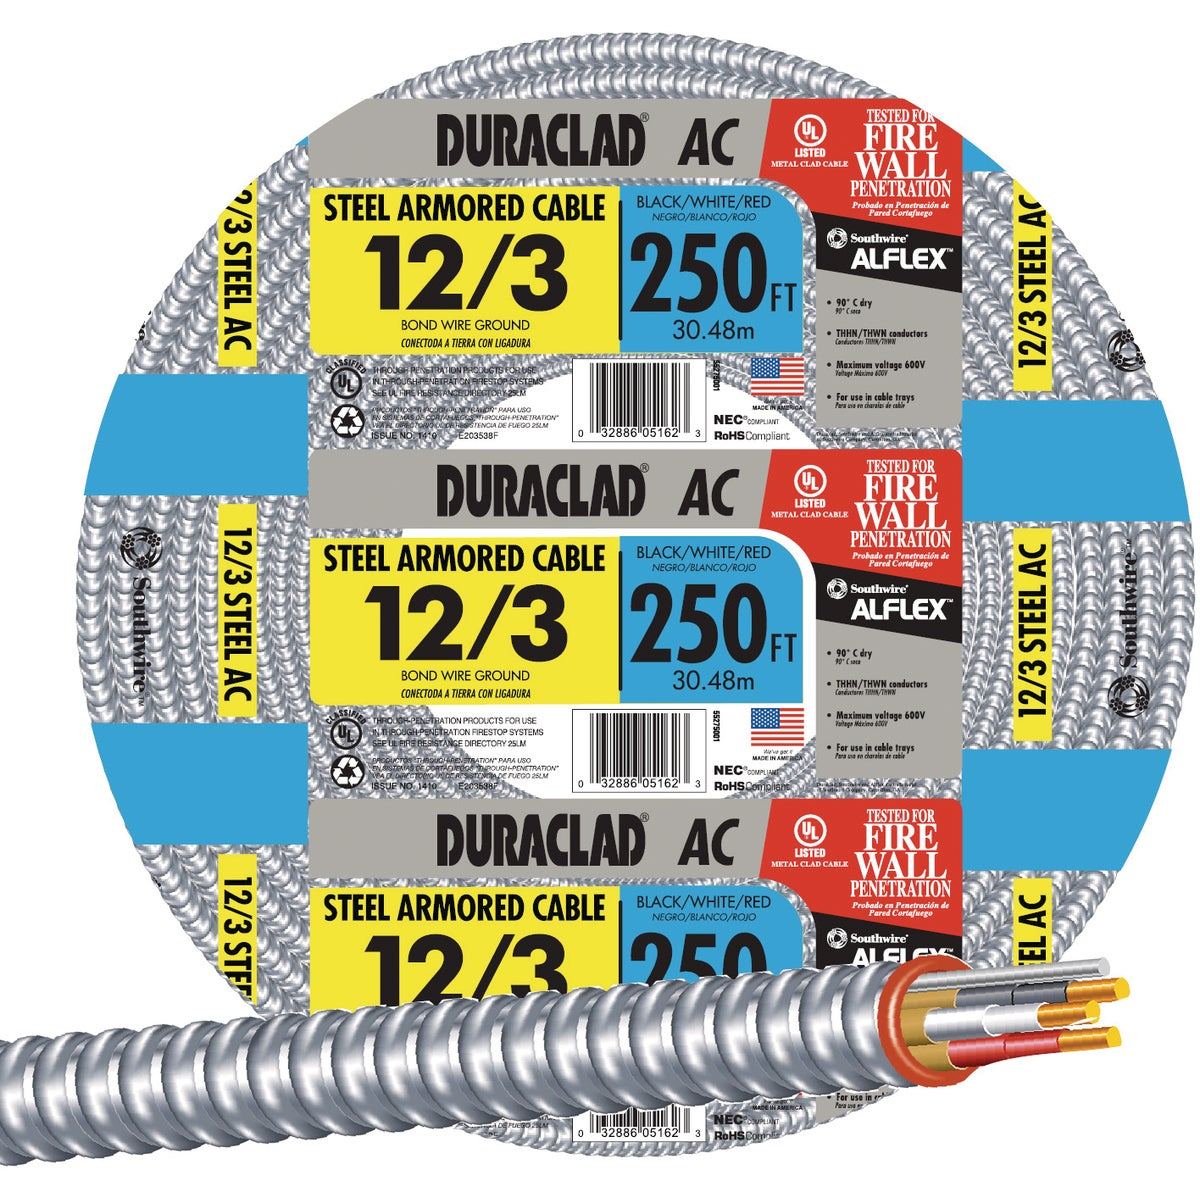 250' 12/3 STL ARMR CABLE